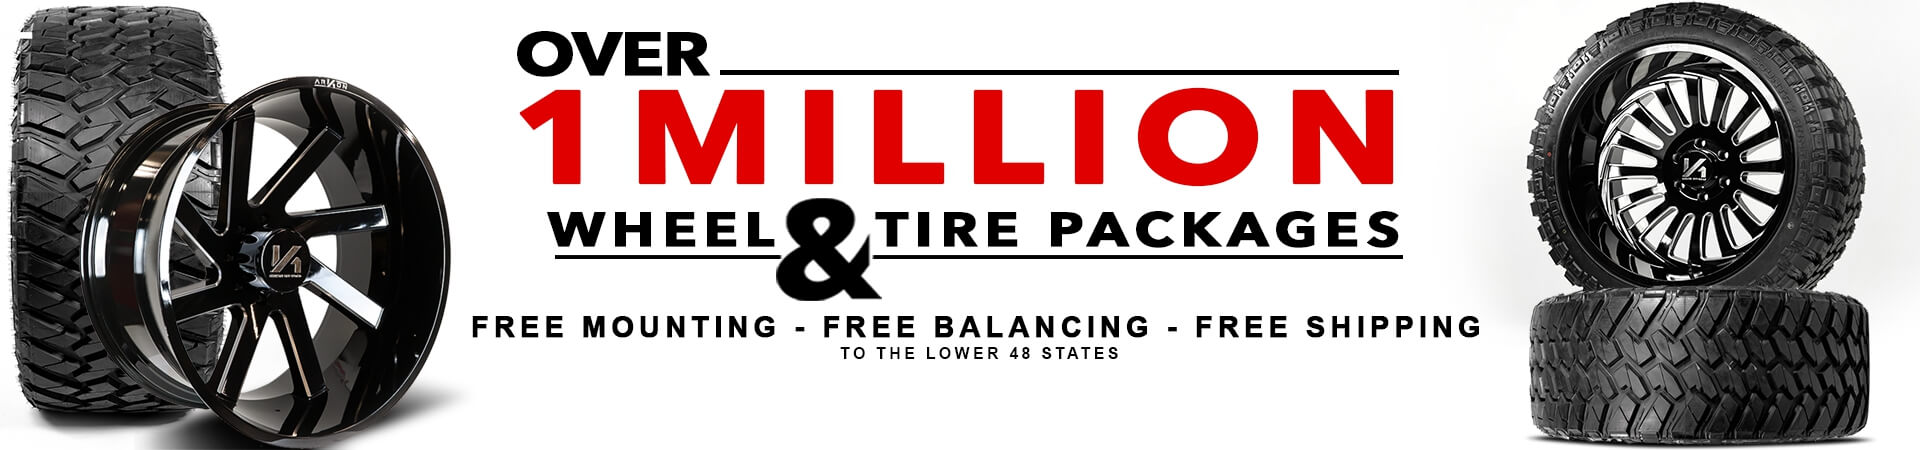 Over 1 Million wheel & tire packages with free mounting, free balancing, and free shipping to the lower 48 states